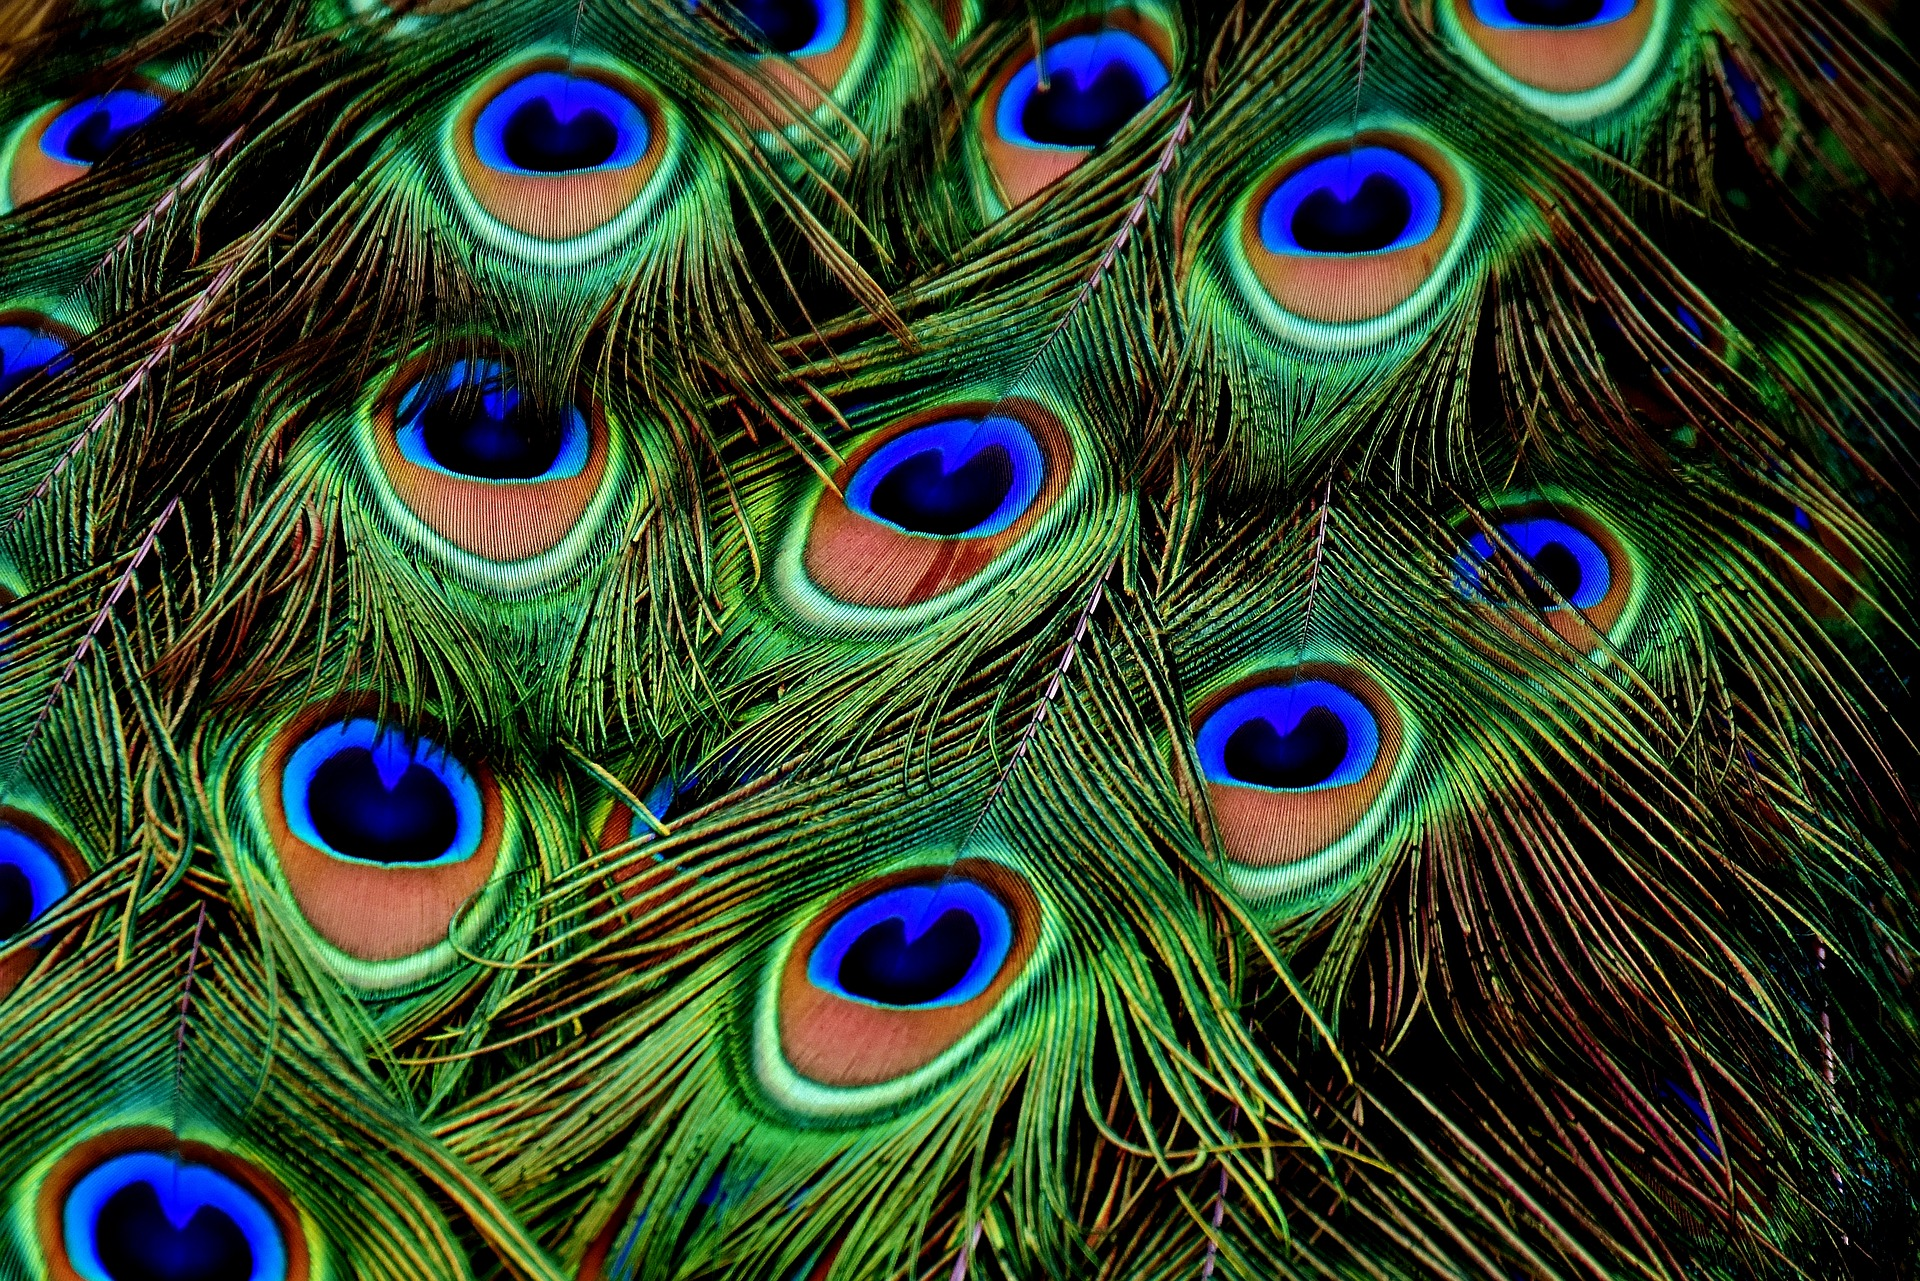 peacock-feathers-3013486_1920